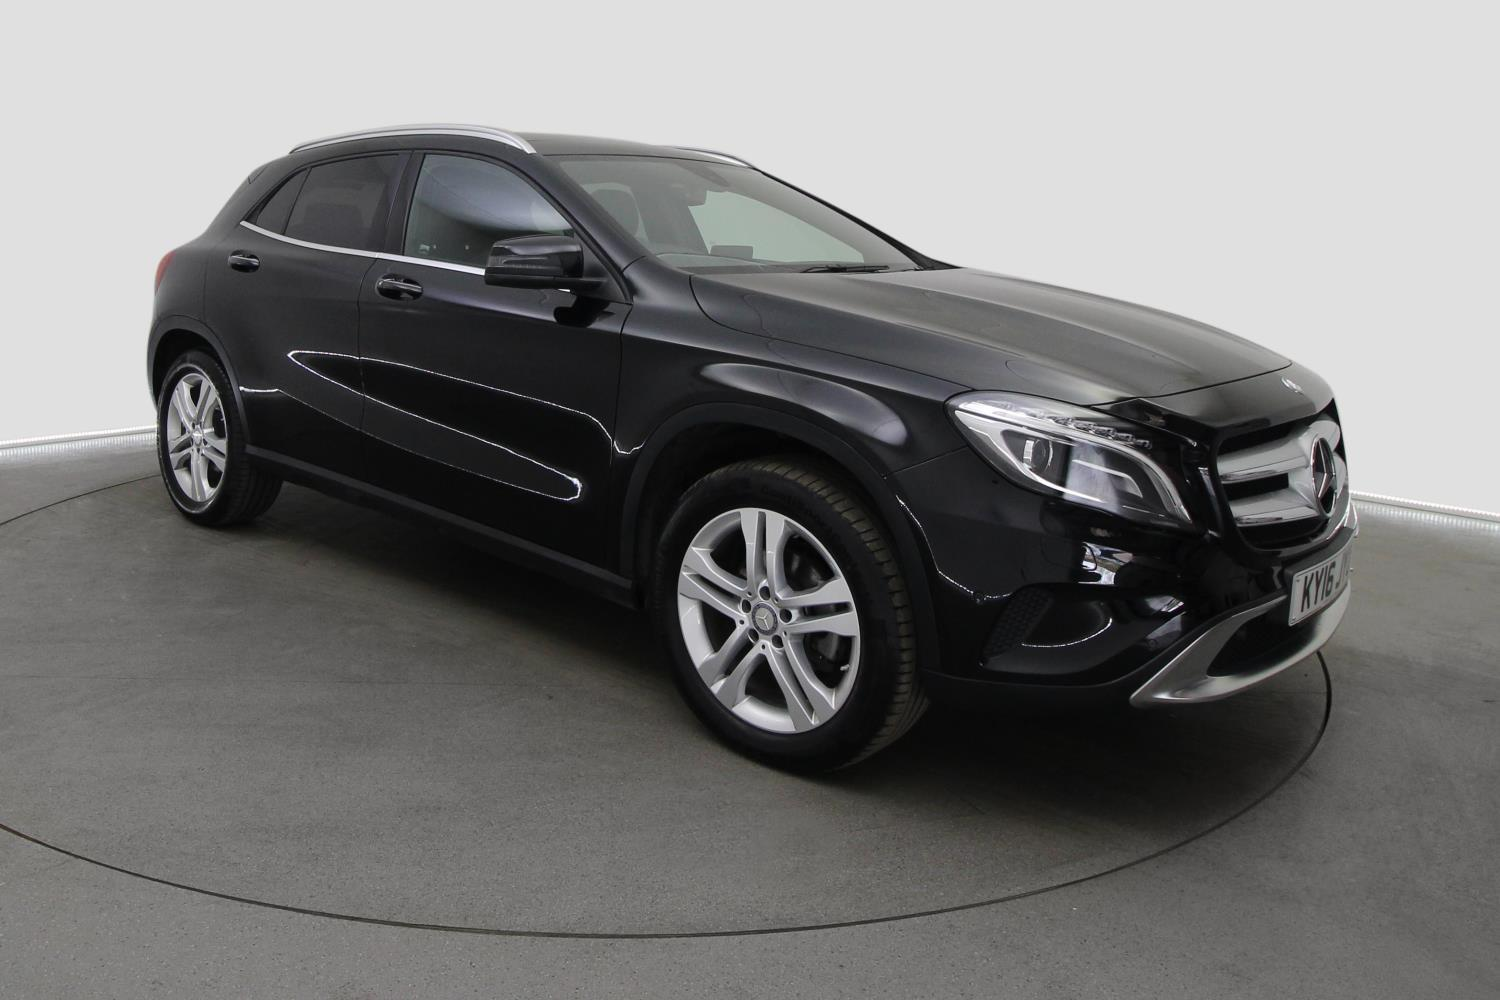 used mercedes benz gla gla 200d sport 5dr auto premium plus diesel hatchback for sale vertu. Black Bedroom Furniture Sets. Home Design Ideas